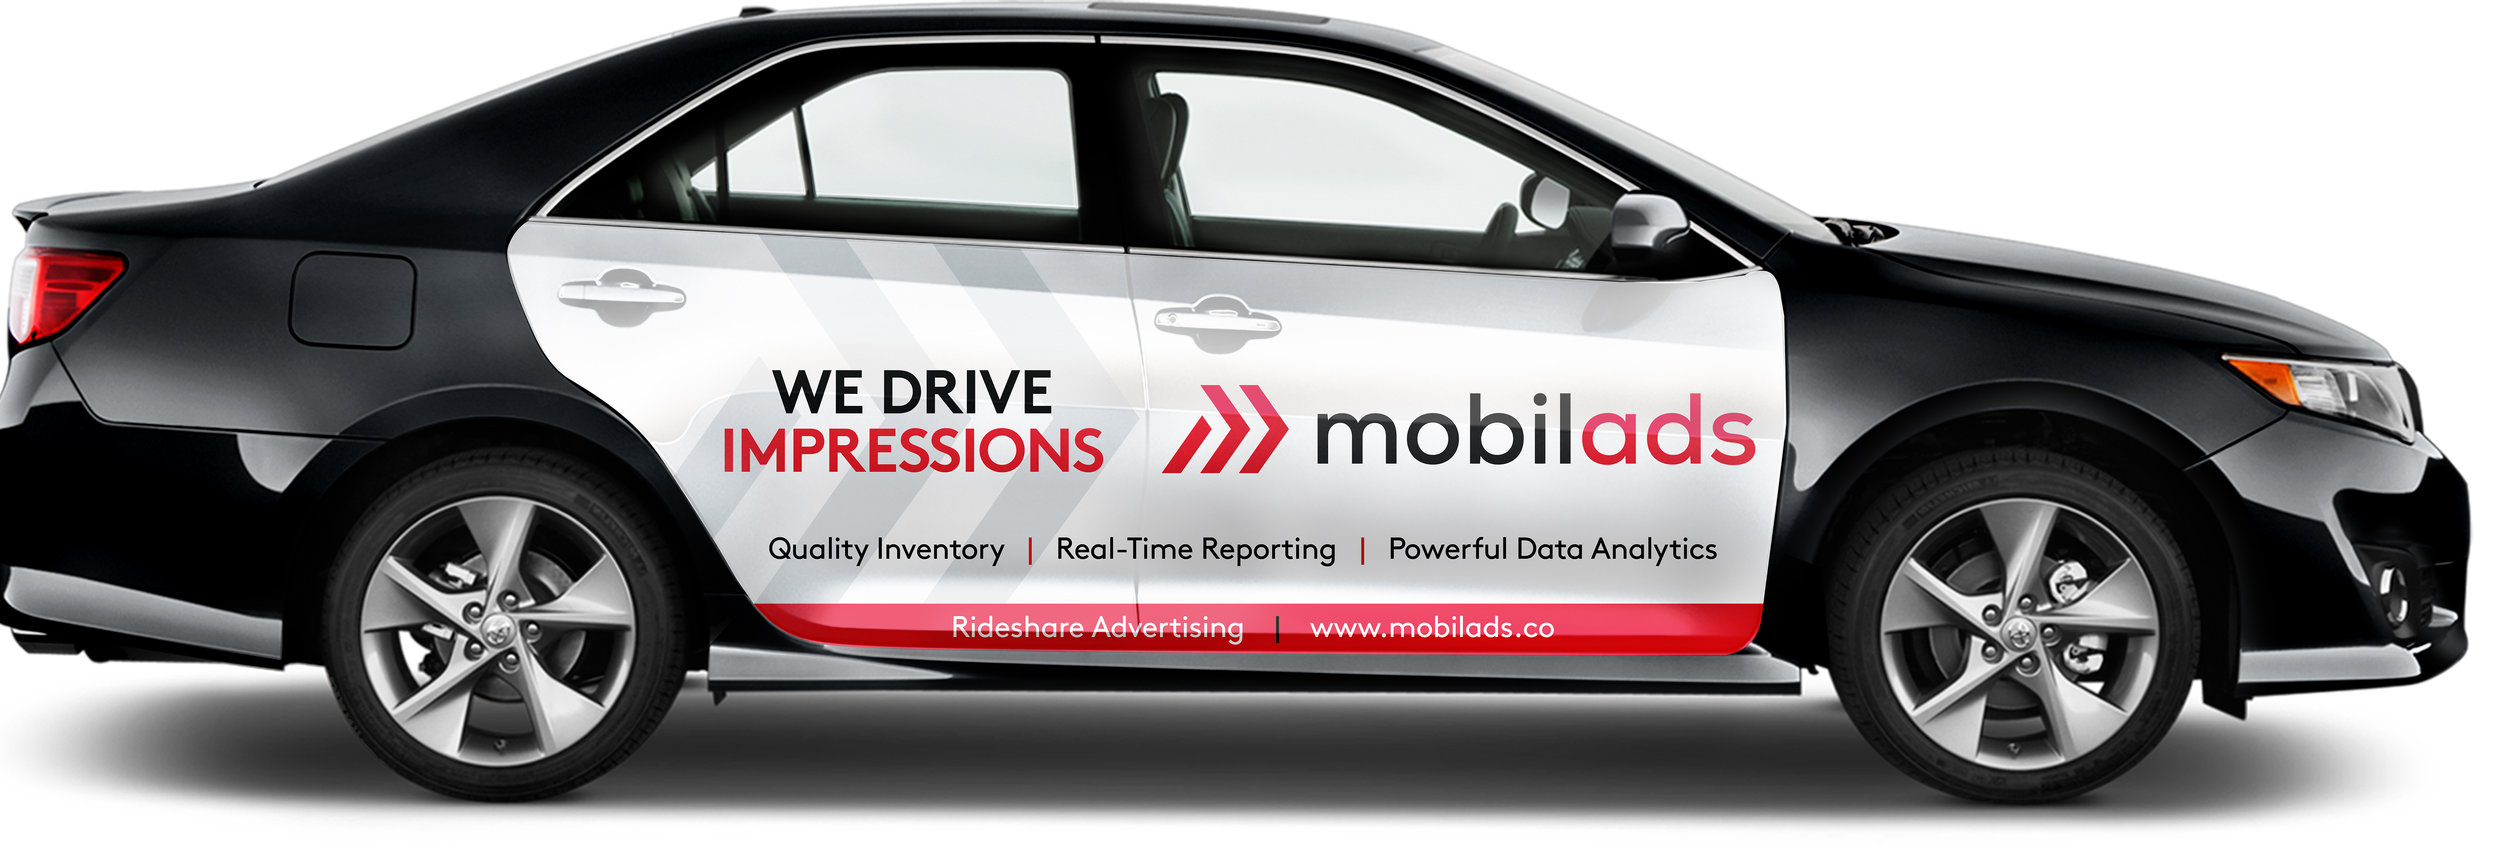 Earn up to $300 a month, doing what you already do. Drive. - High impact advertising at a low cost, reaching 13,000+ daily impressions per car.